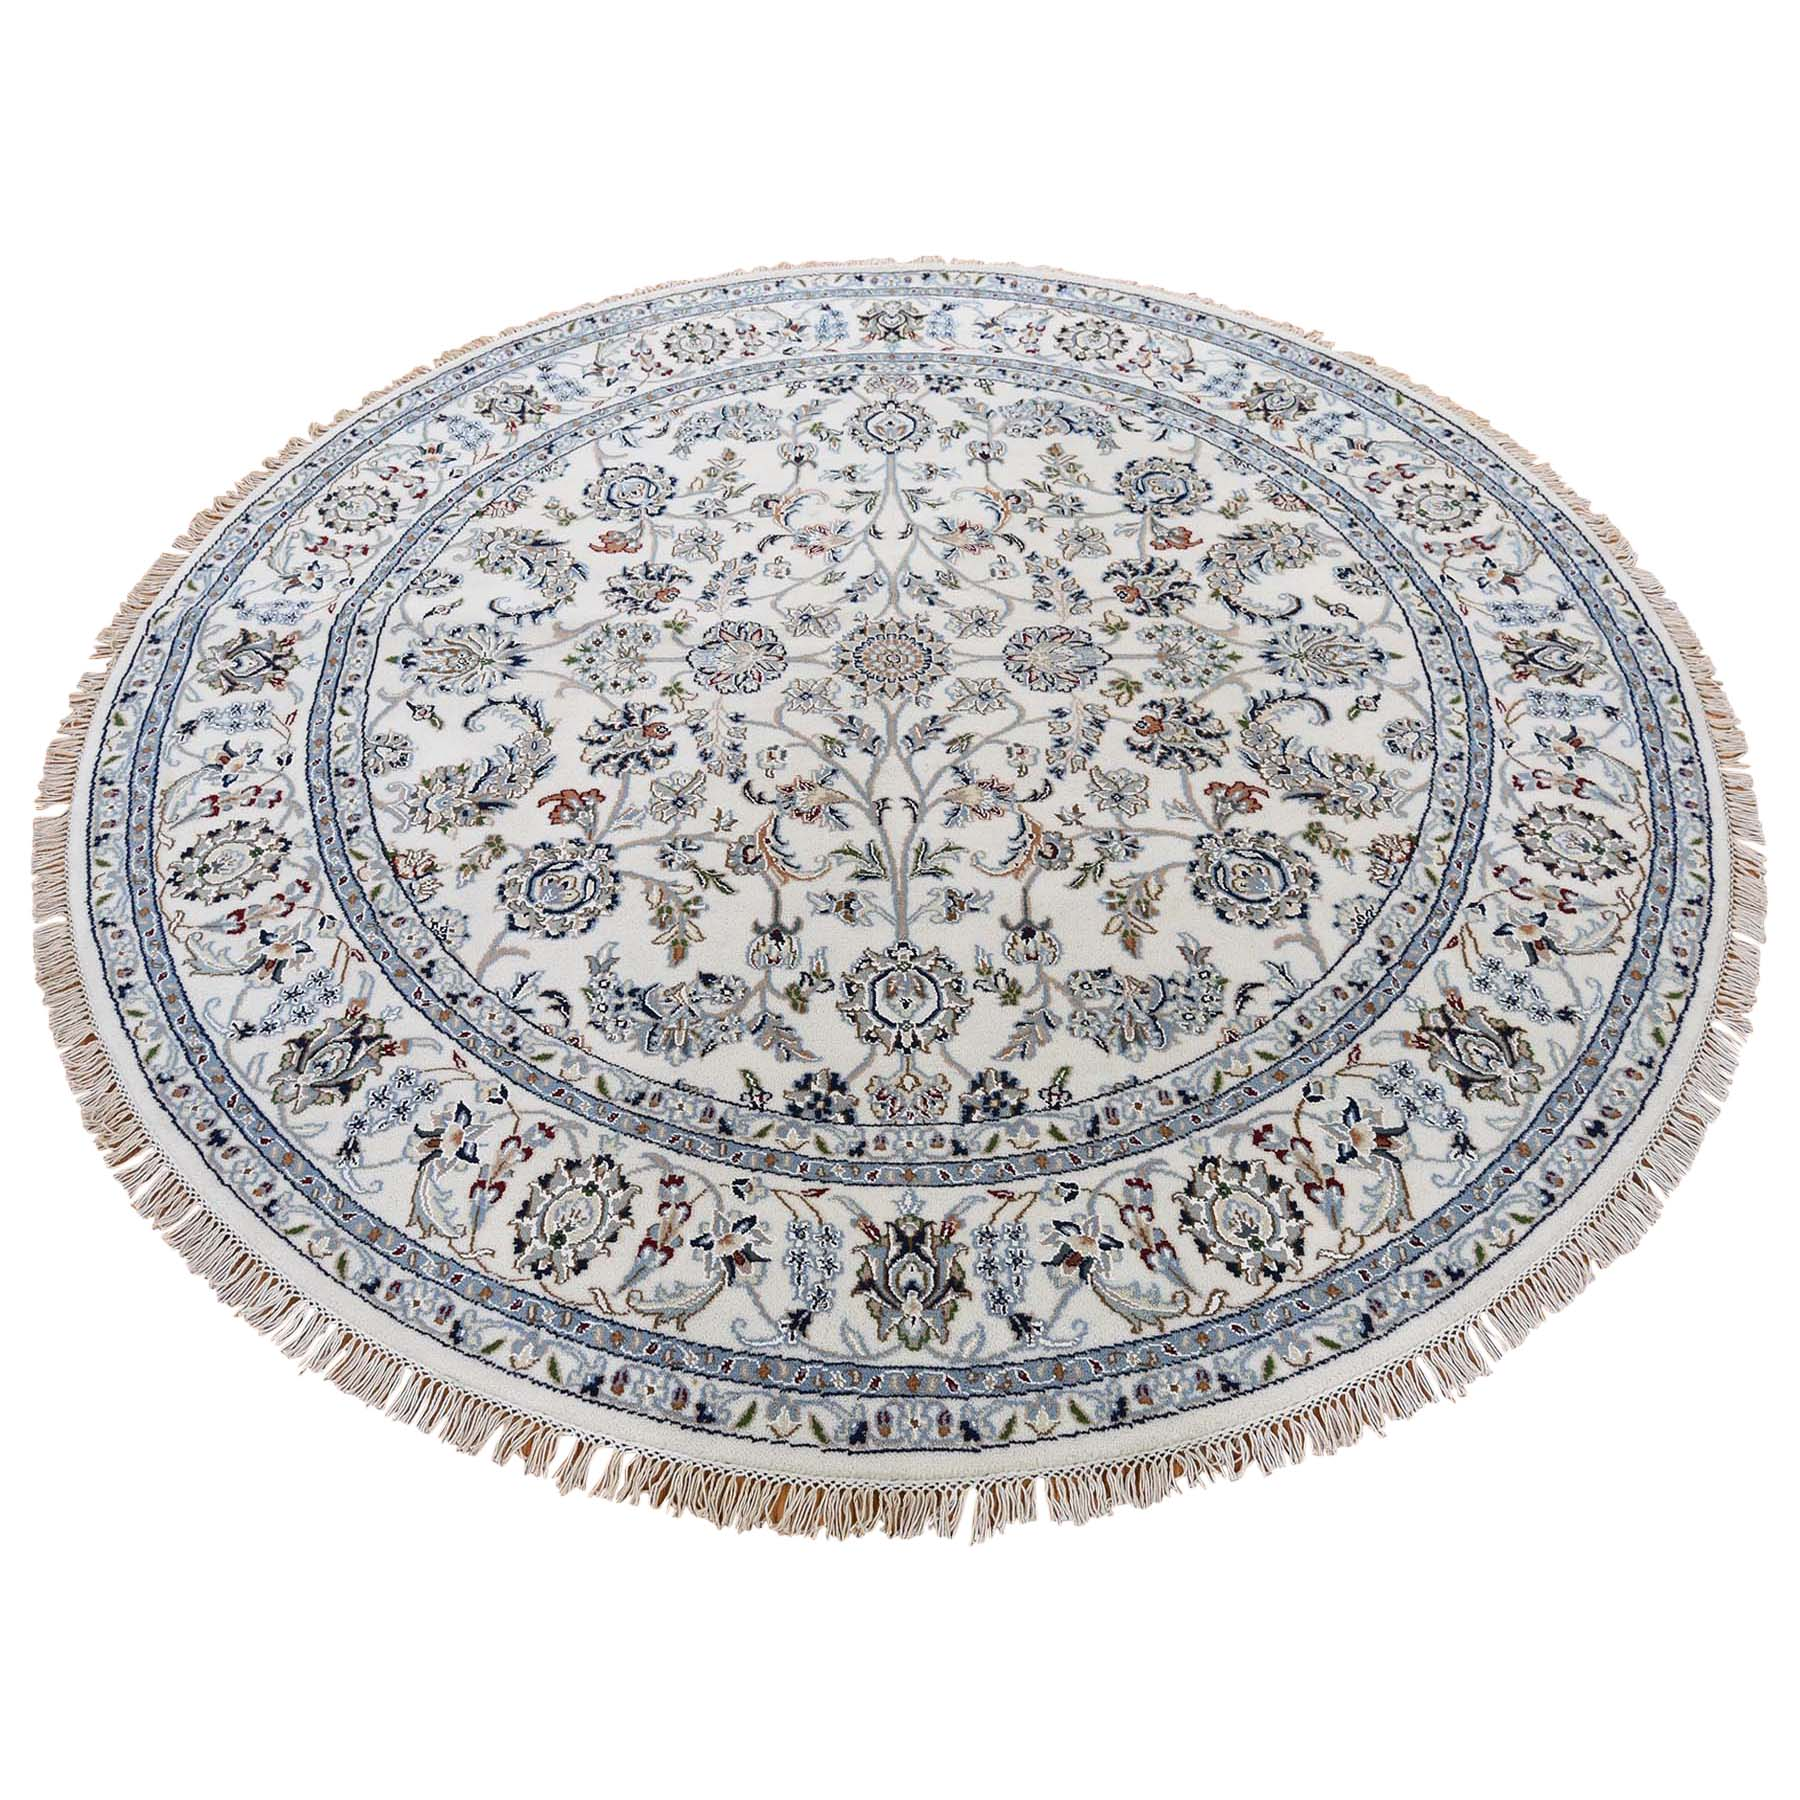 Pirniakan Collection Hand Knotted Ivory Rug No: 0192304